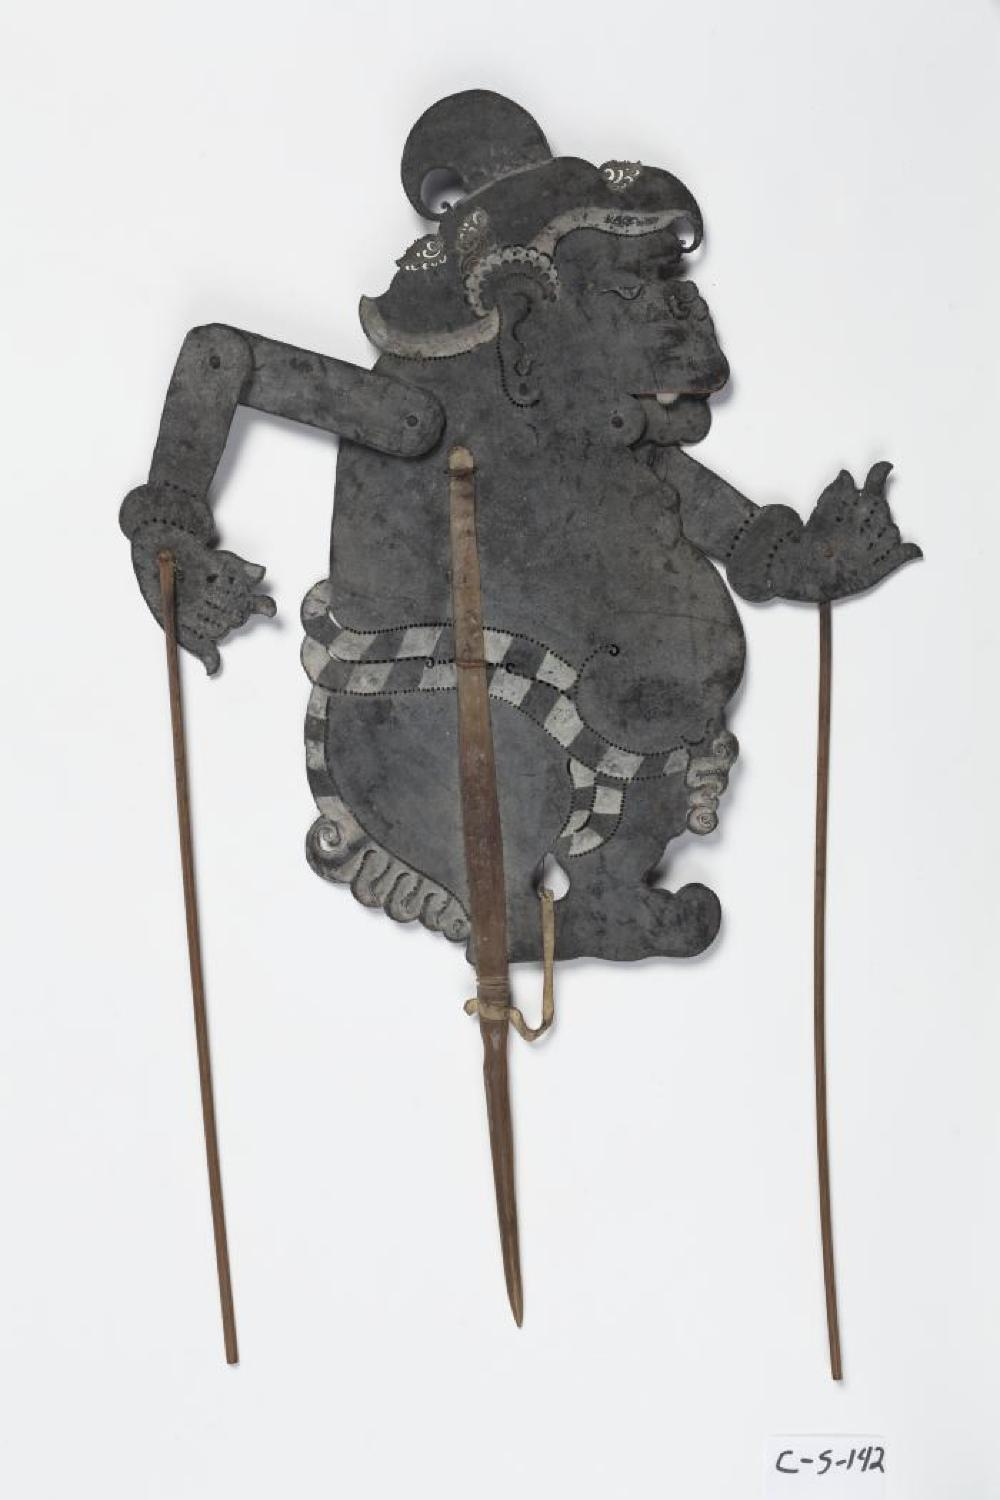 Balinese; Wayang Kulit Shadow Puppet (Twalen); 20th century; Leather, wood; 21 1/4 x 8 x 1/8 in.; Collection of Isamu Noguchi. (Study Collection; Collectibles, C-S-142)